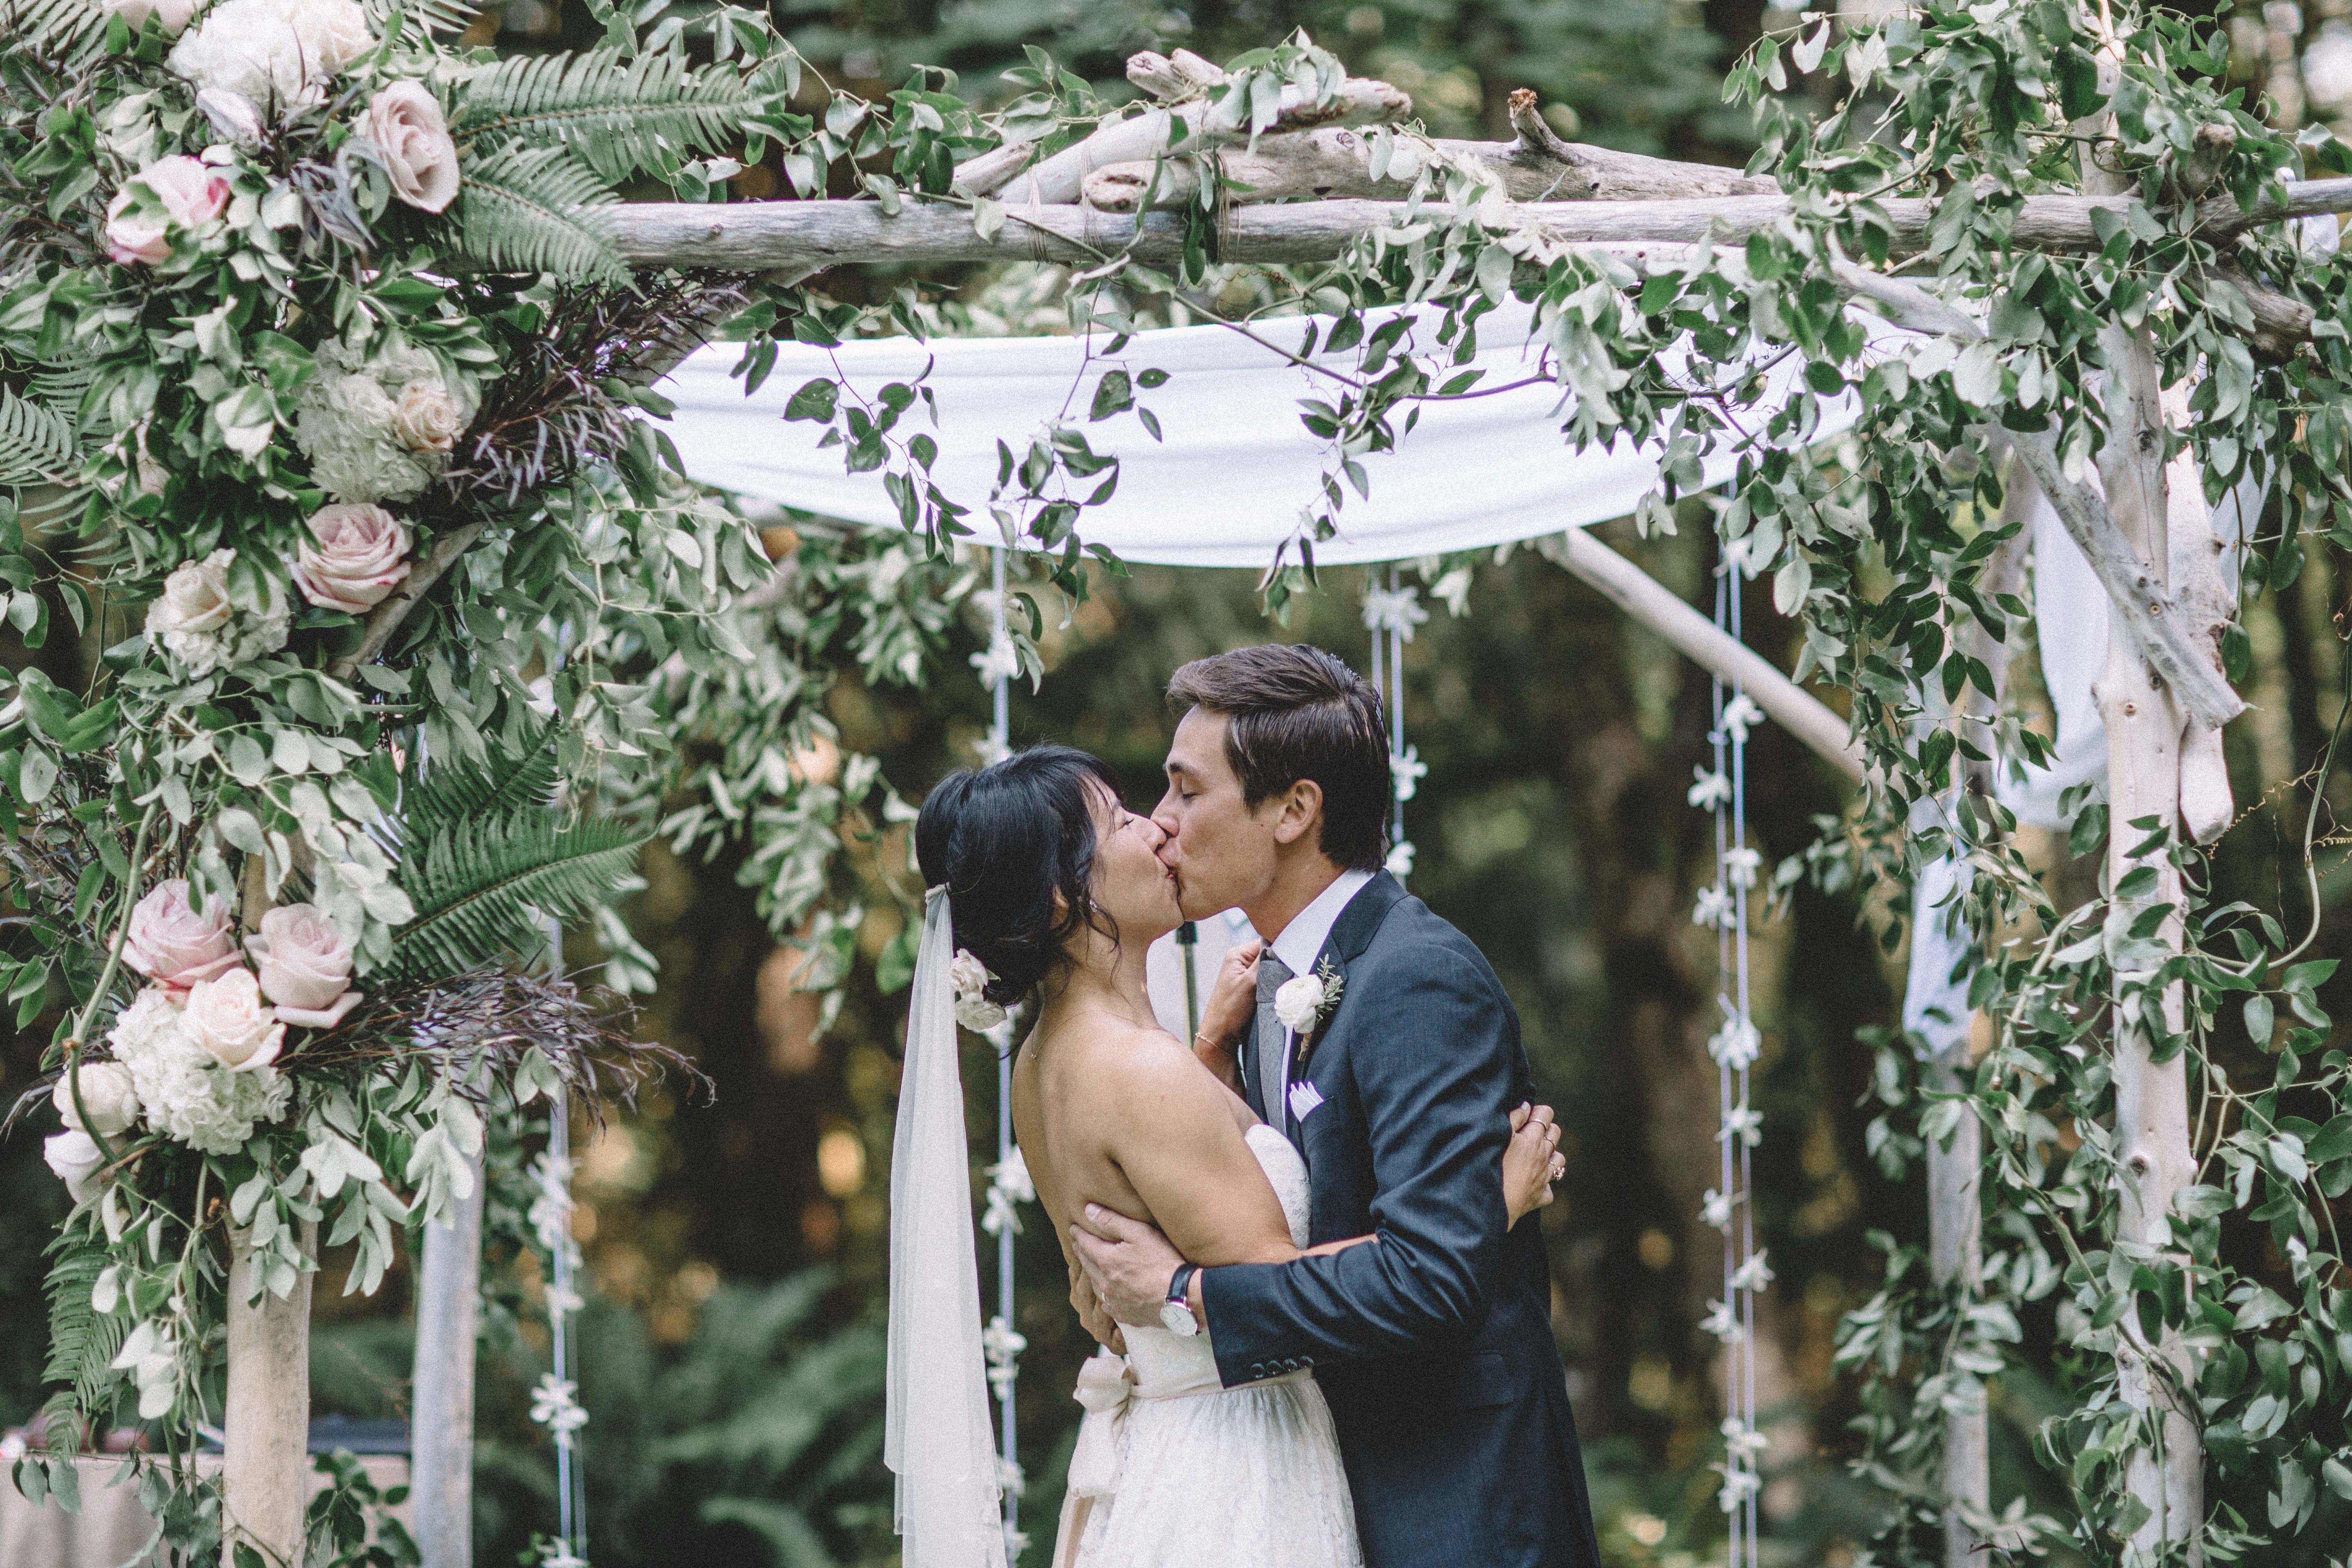 I found this great wedding vendor on The Knot! Wedding